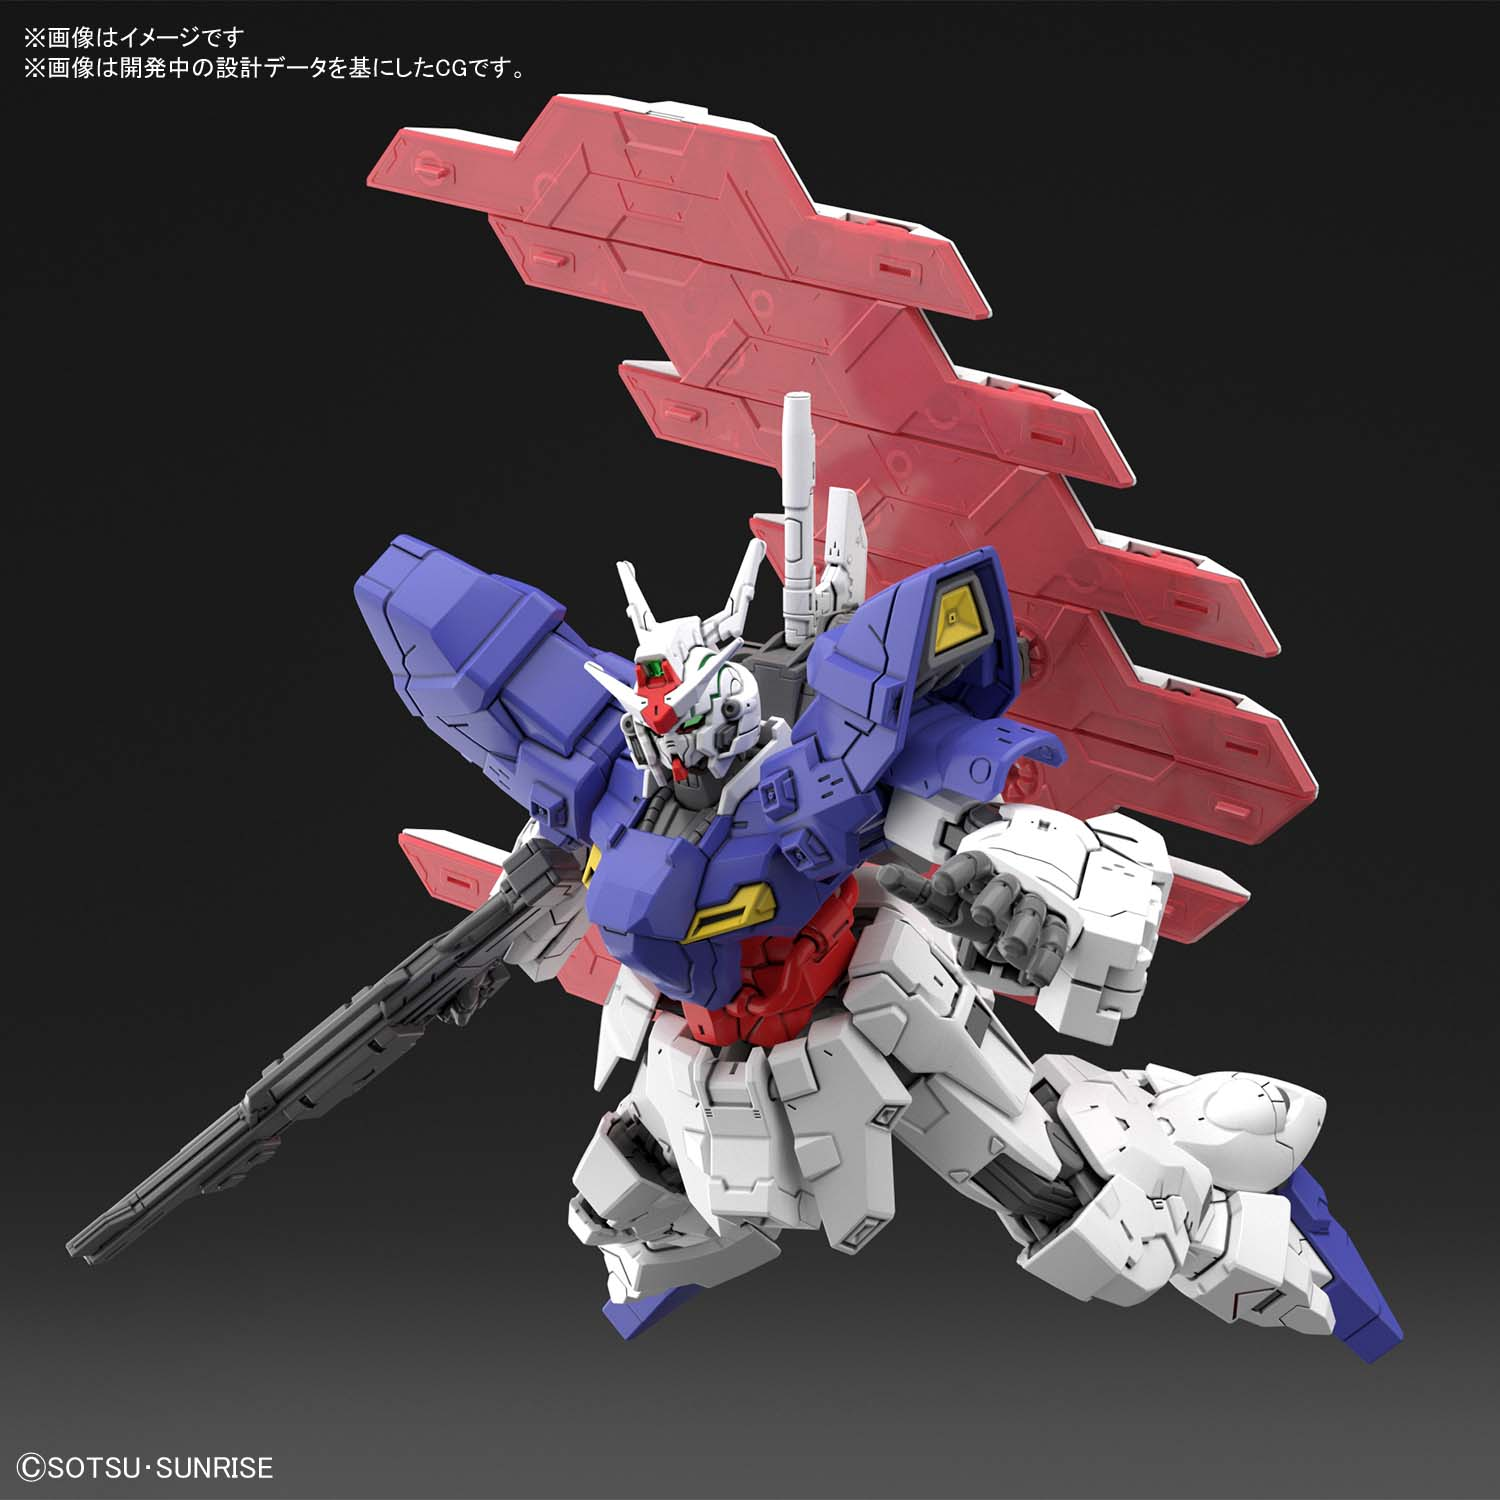 HG 1/144 Moon Gundam flight